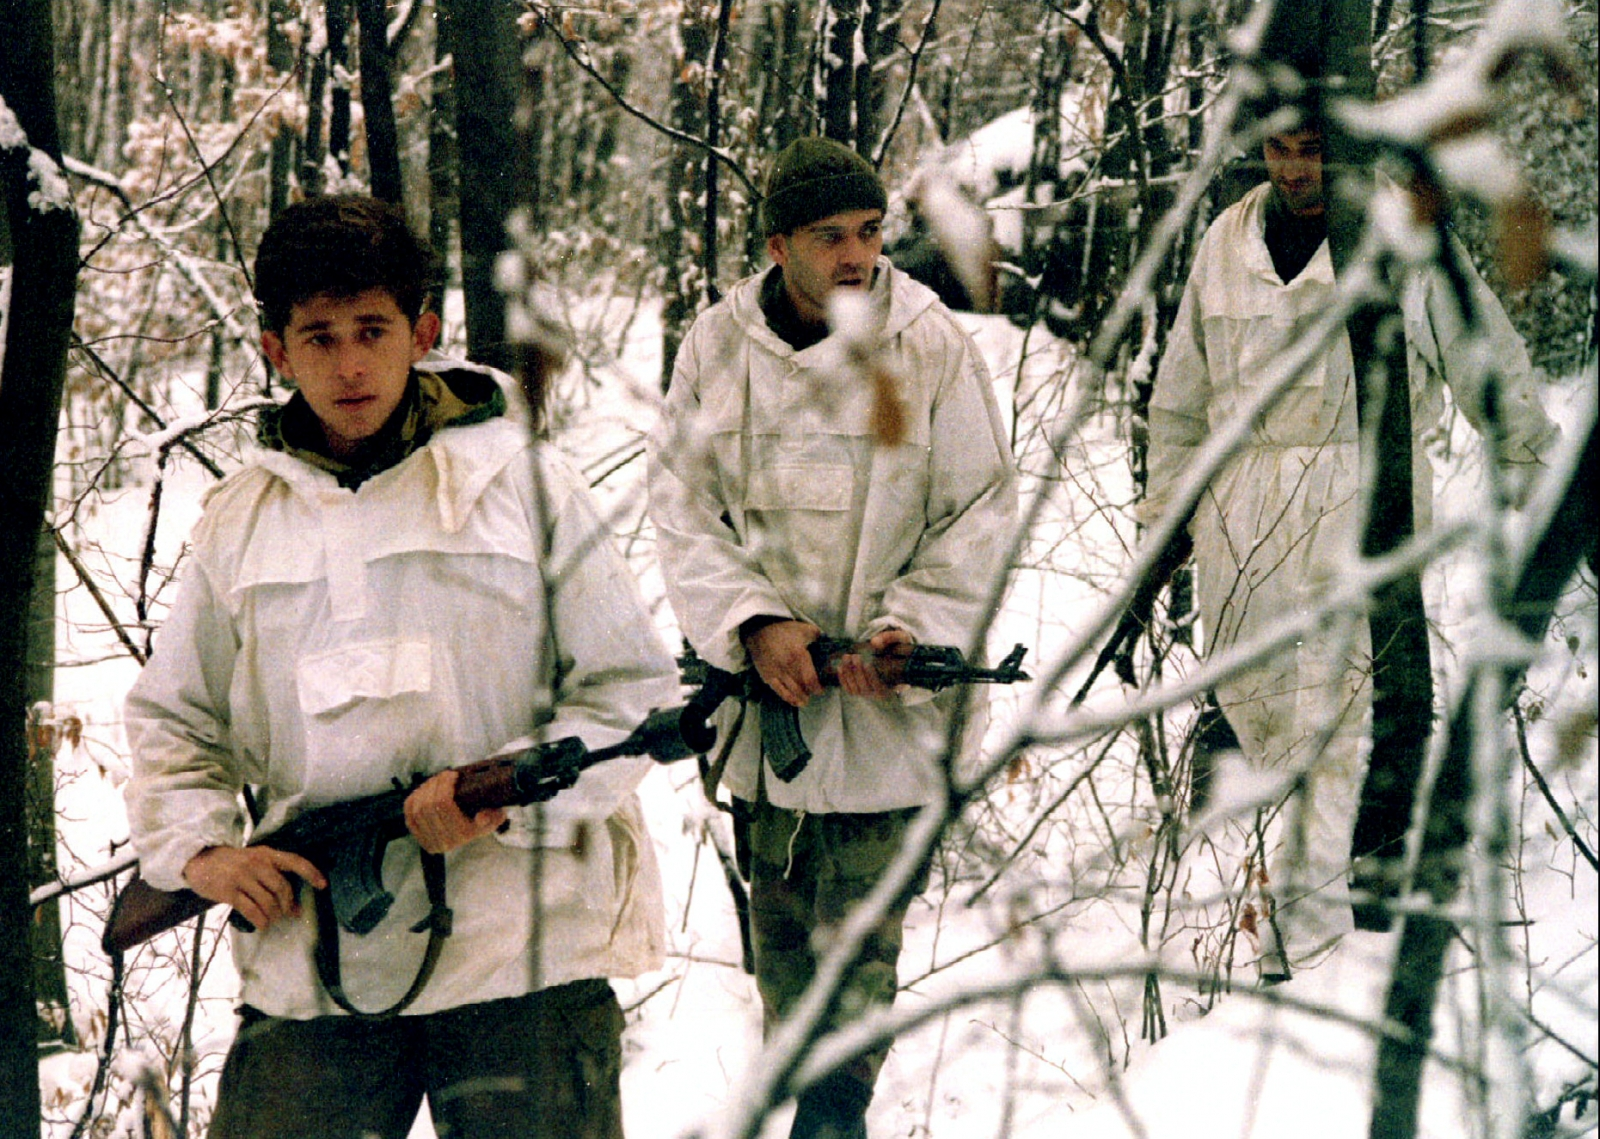 Bosnian Serb soldiers in reconnaissance patrol